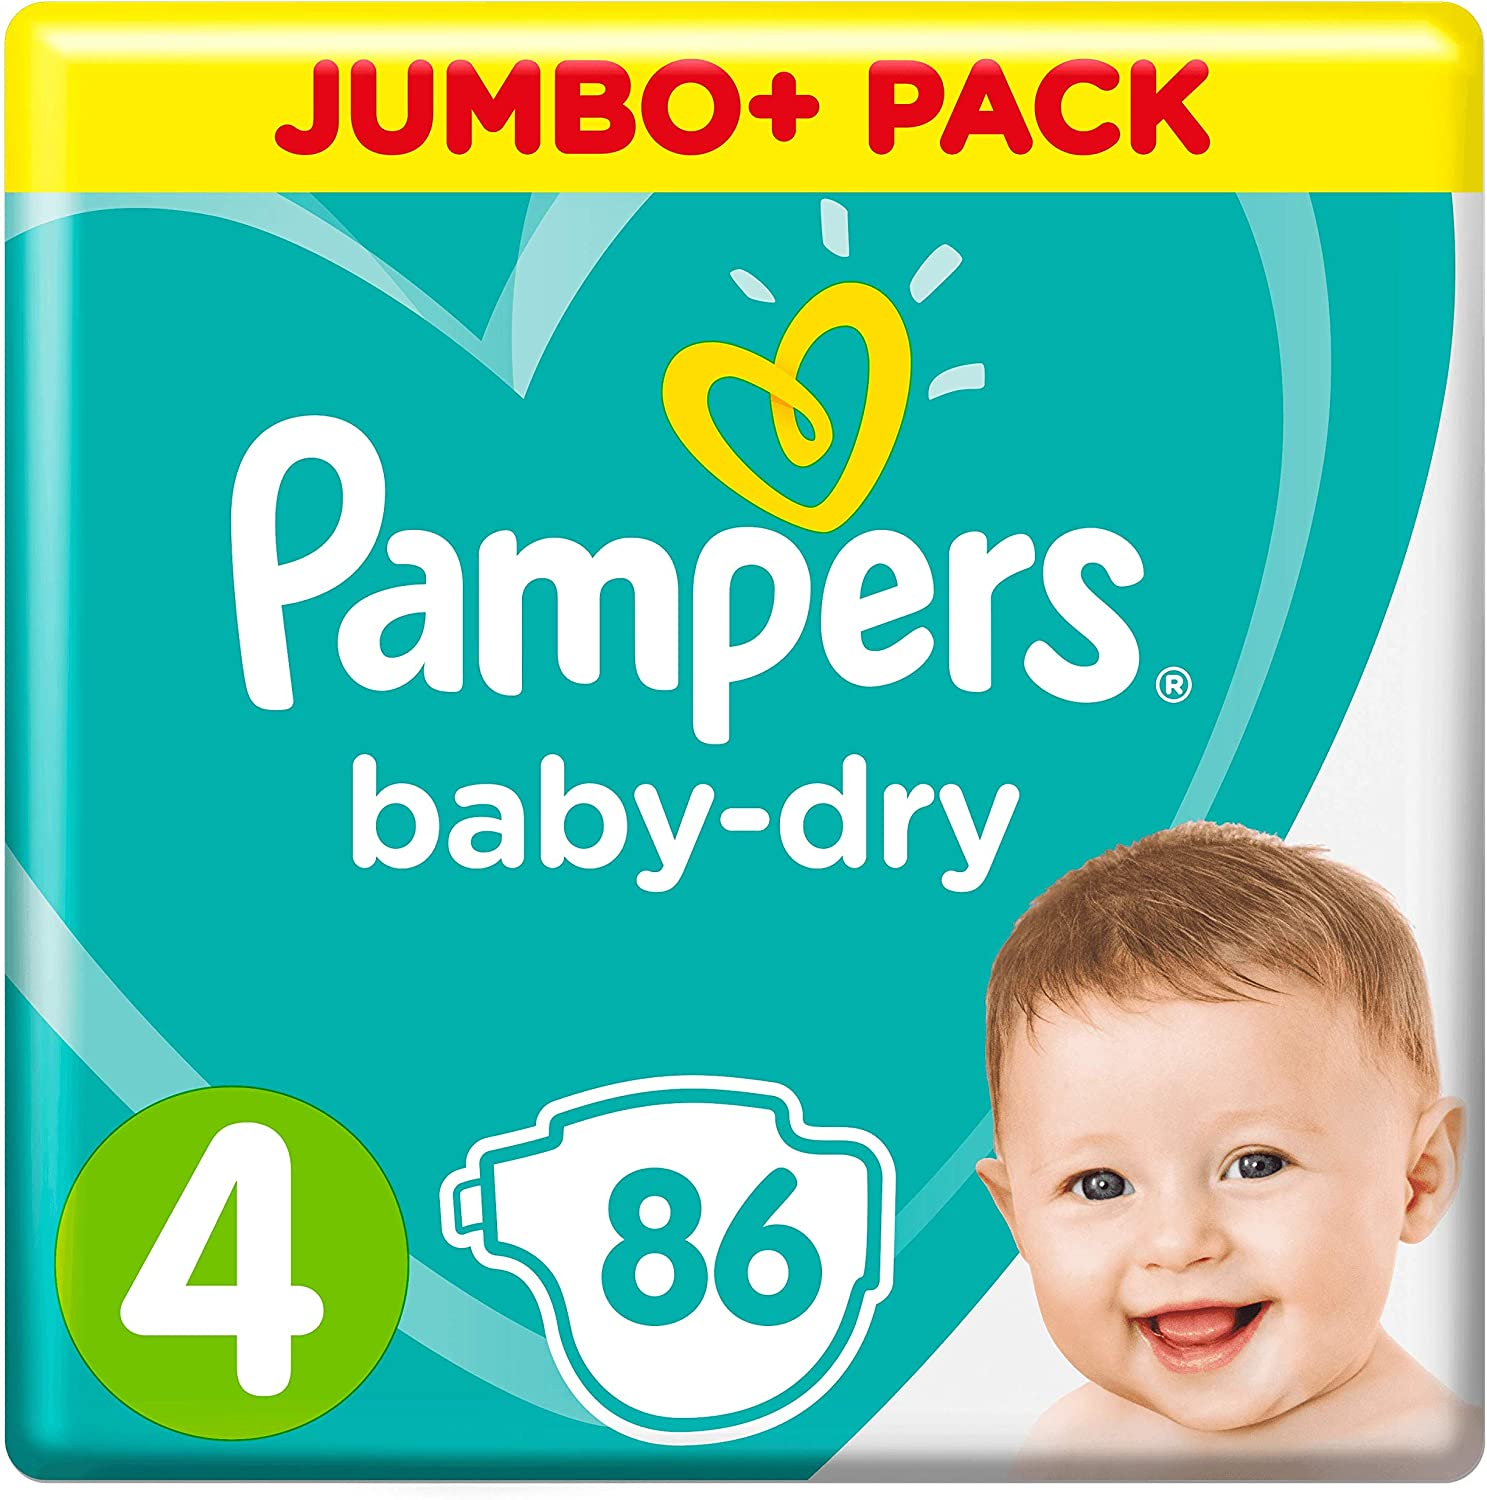 Pampers Baby-Dry Taille 4 86 Couches 9-14 kg Jumbo Pack Canaux dAir pour Respirant S/échage Nuit